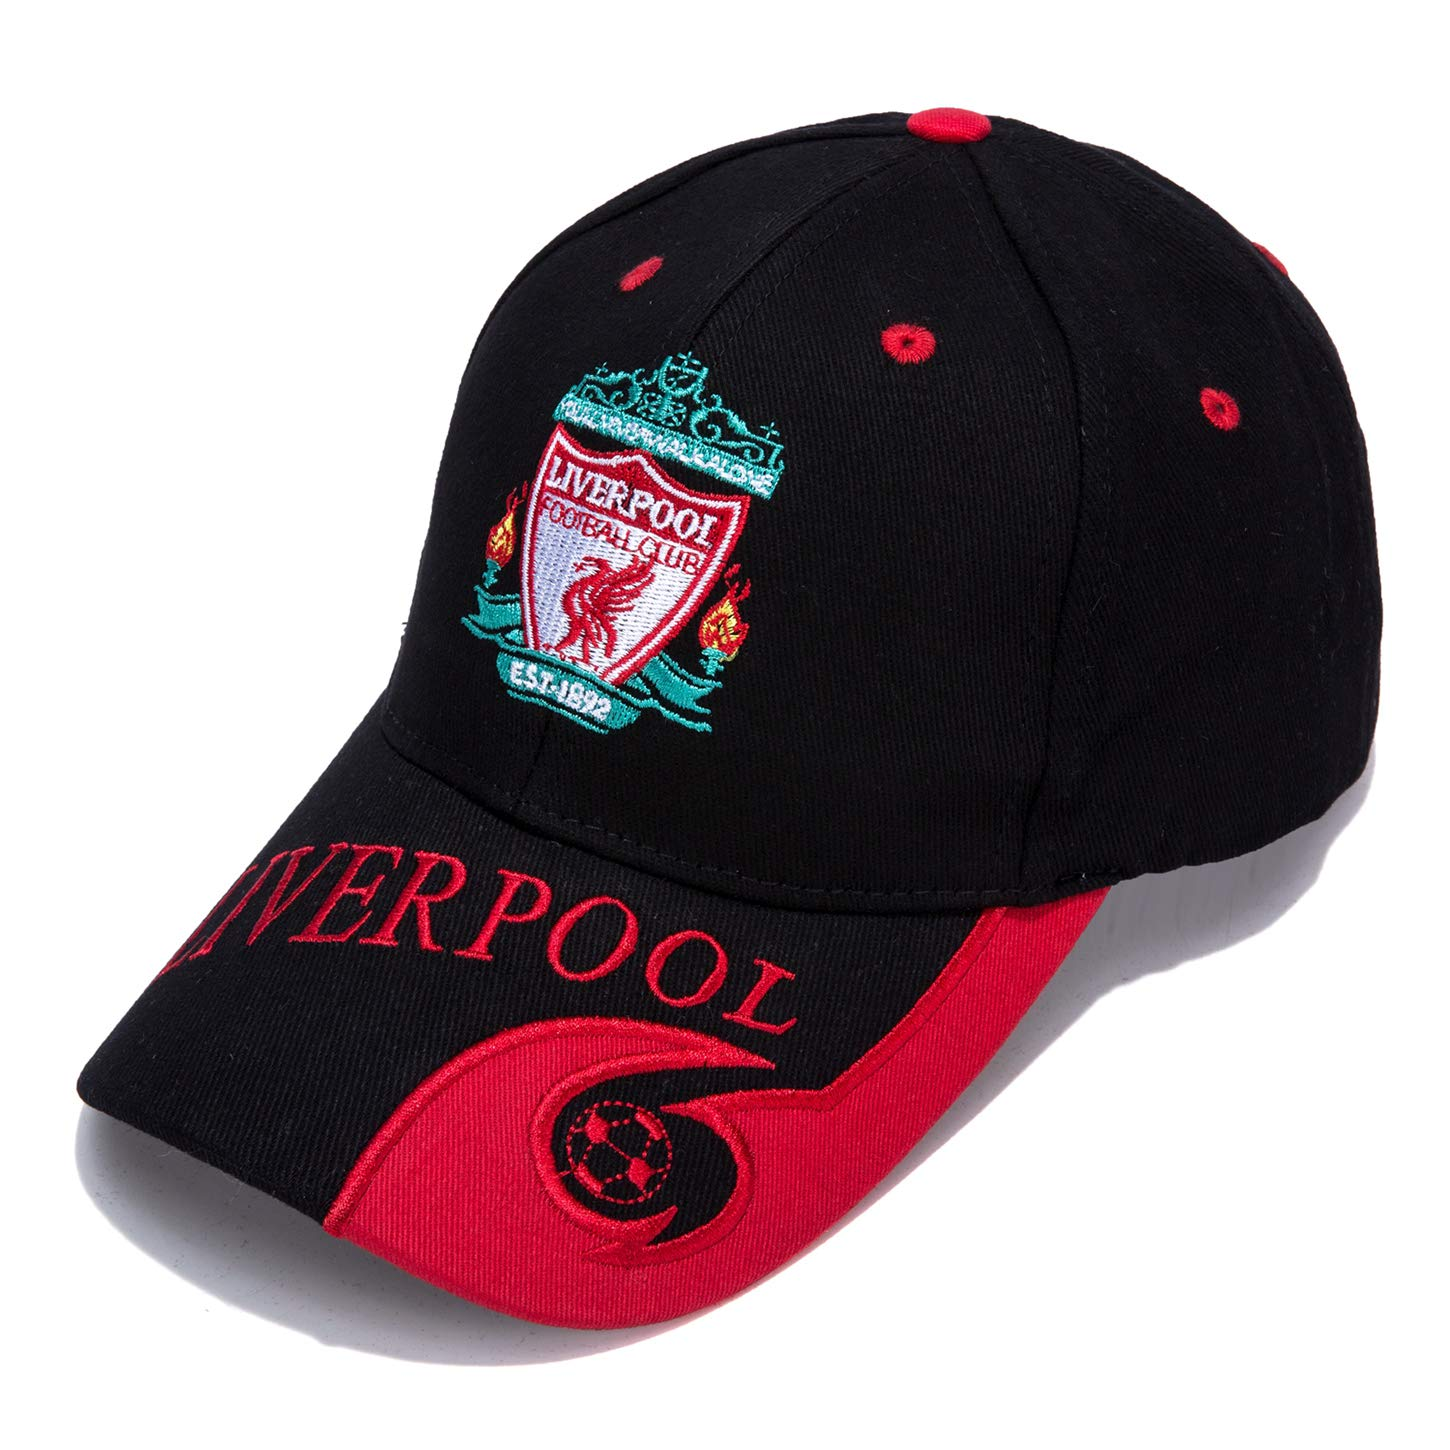 Embroidered Outdooors Adjustable Mens Baseball Cap CaiLLYOJHO Liverpool Black F.C